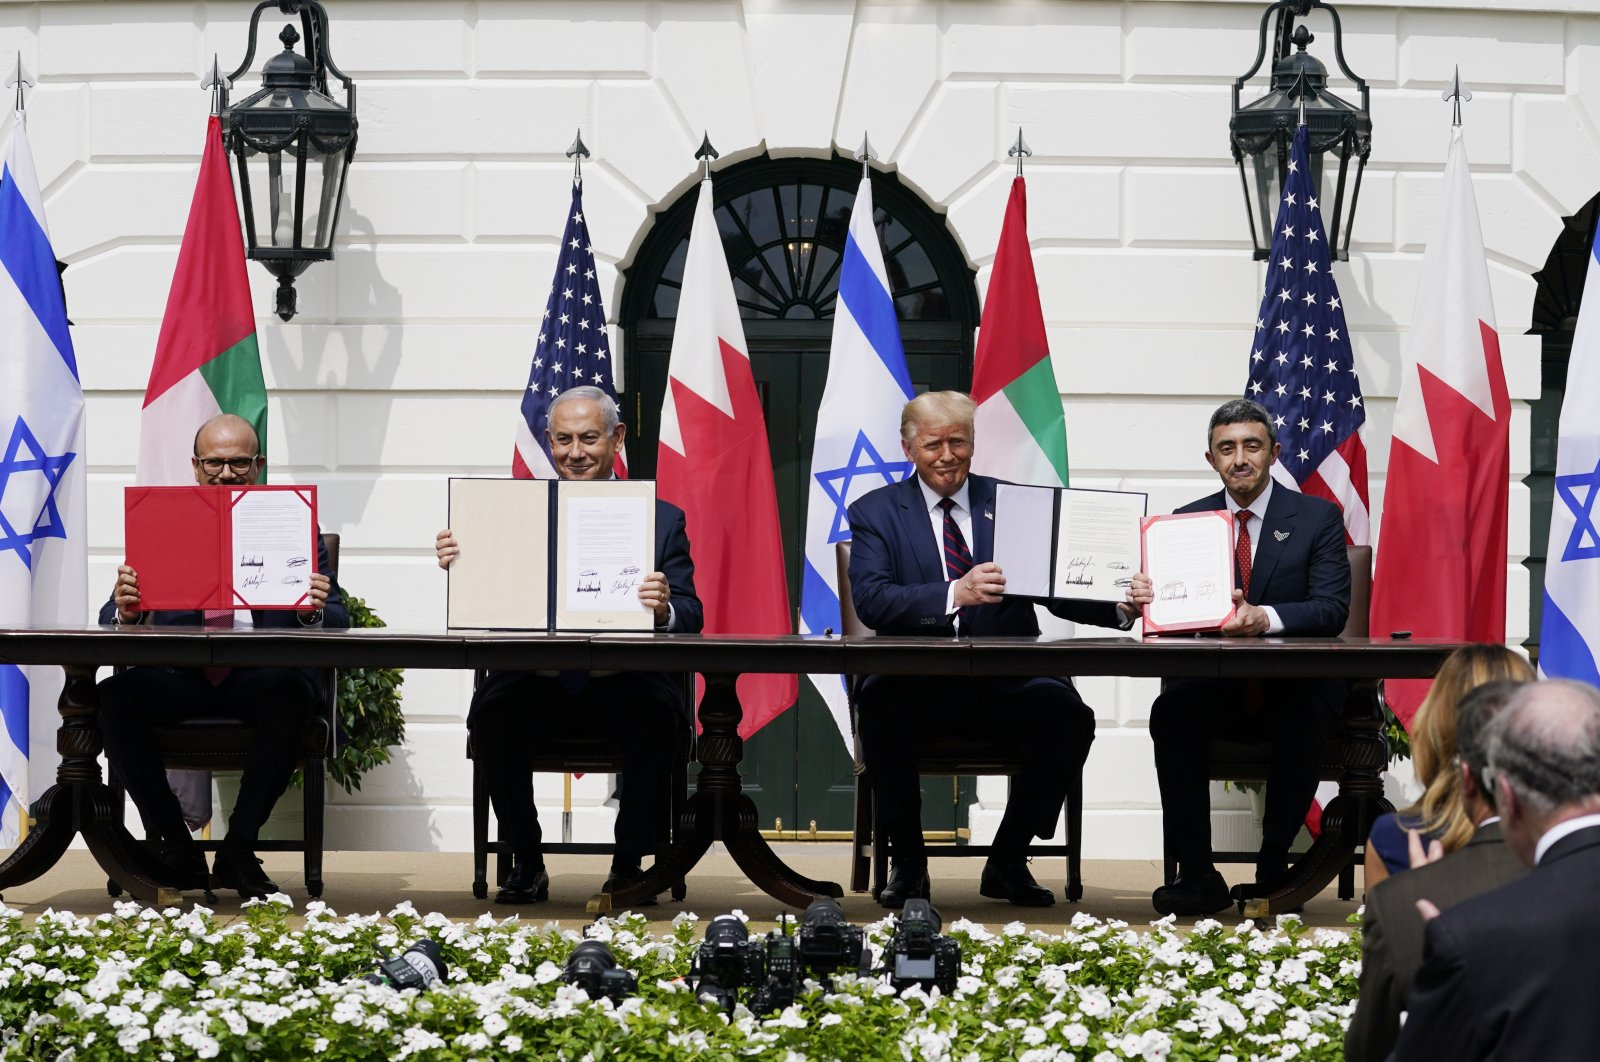 President Donald Trump (C) with from left, Bahrain Foreign Minister Khalid bin Ahmed Al Khalifa, Israeli Prime Minister Benjamin Netanyahu and United Arab Emirates (UAE) Foreign Minister Abdullah bin Zayed al-Nahyan, during the Abraham Accords-signing ceremony on the South Lawn of the White House, Washington, Sept. 15, 2020. (AP Photo)